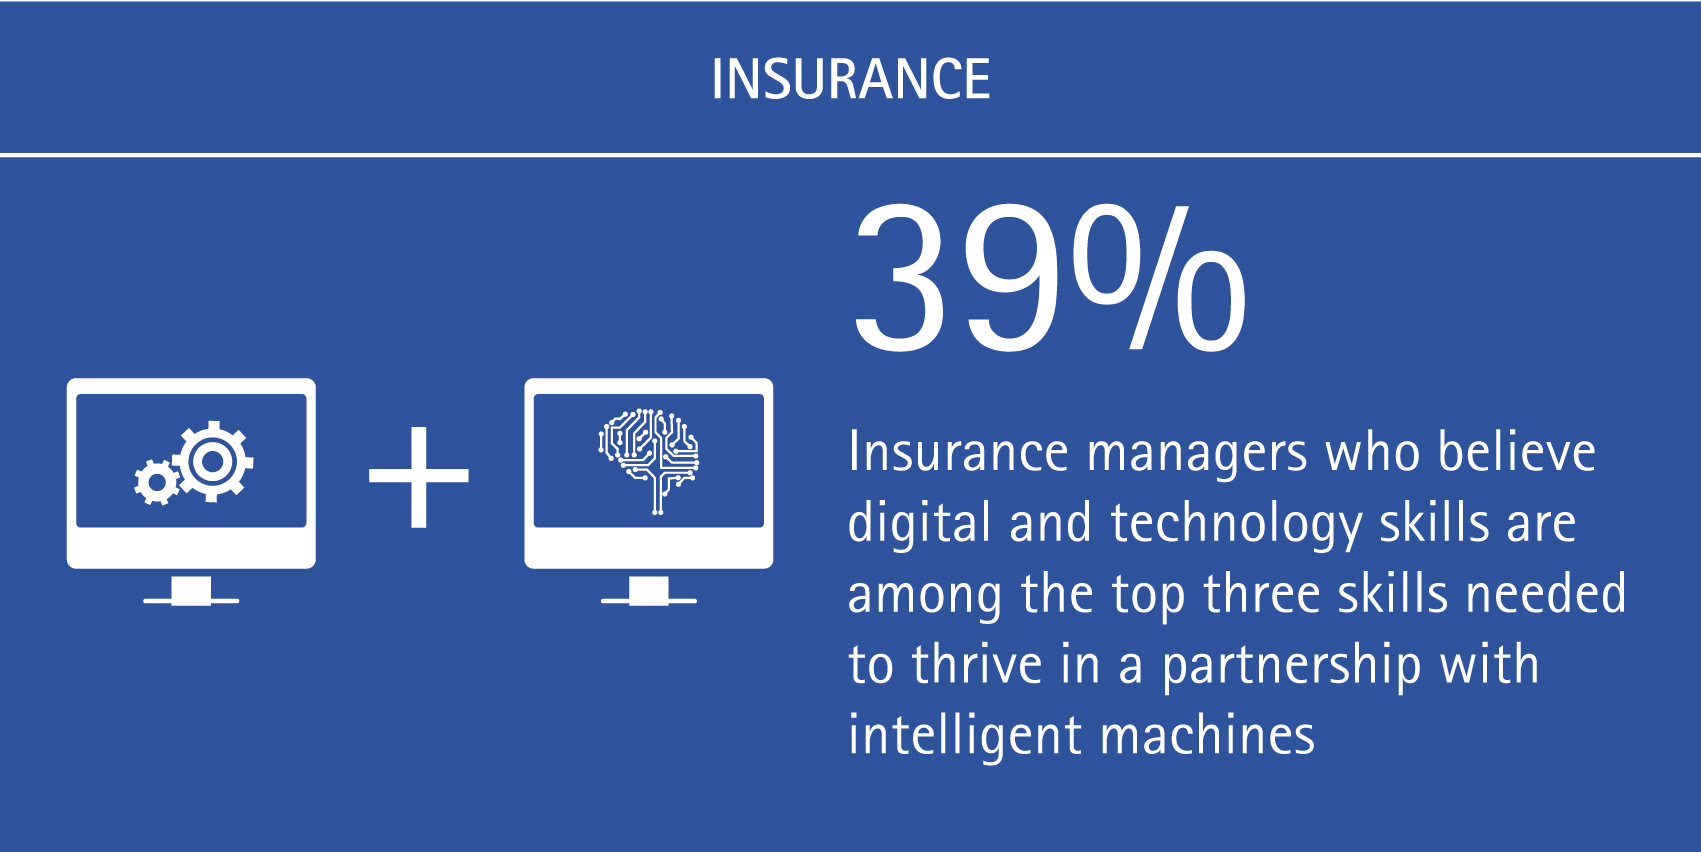 39% of insurance managers believe digital and technology skills are among the top three skills needed to thrive in a partnership with intelligent machines.